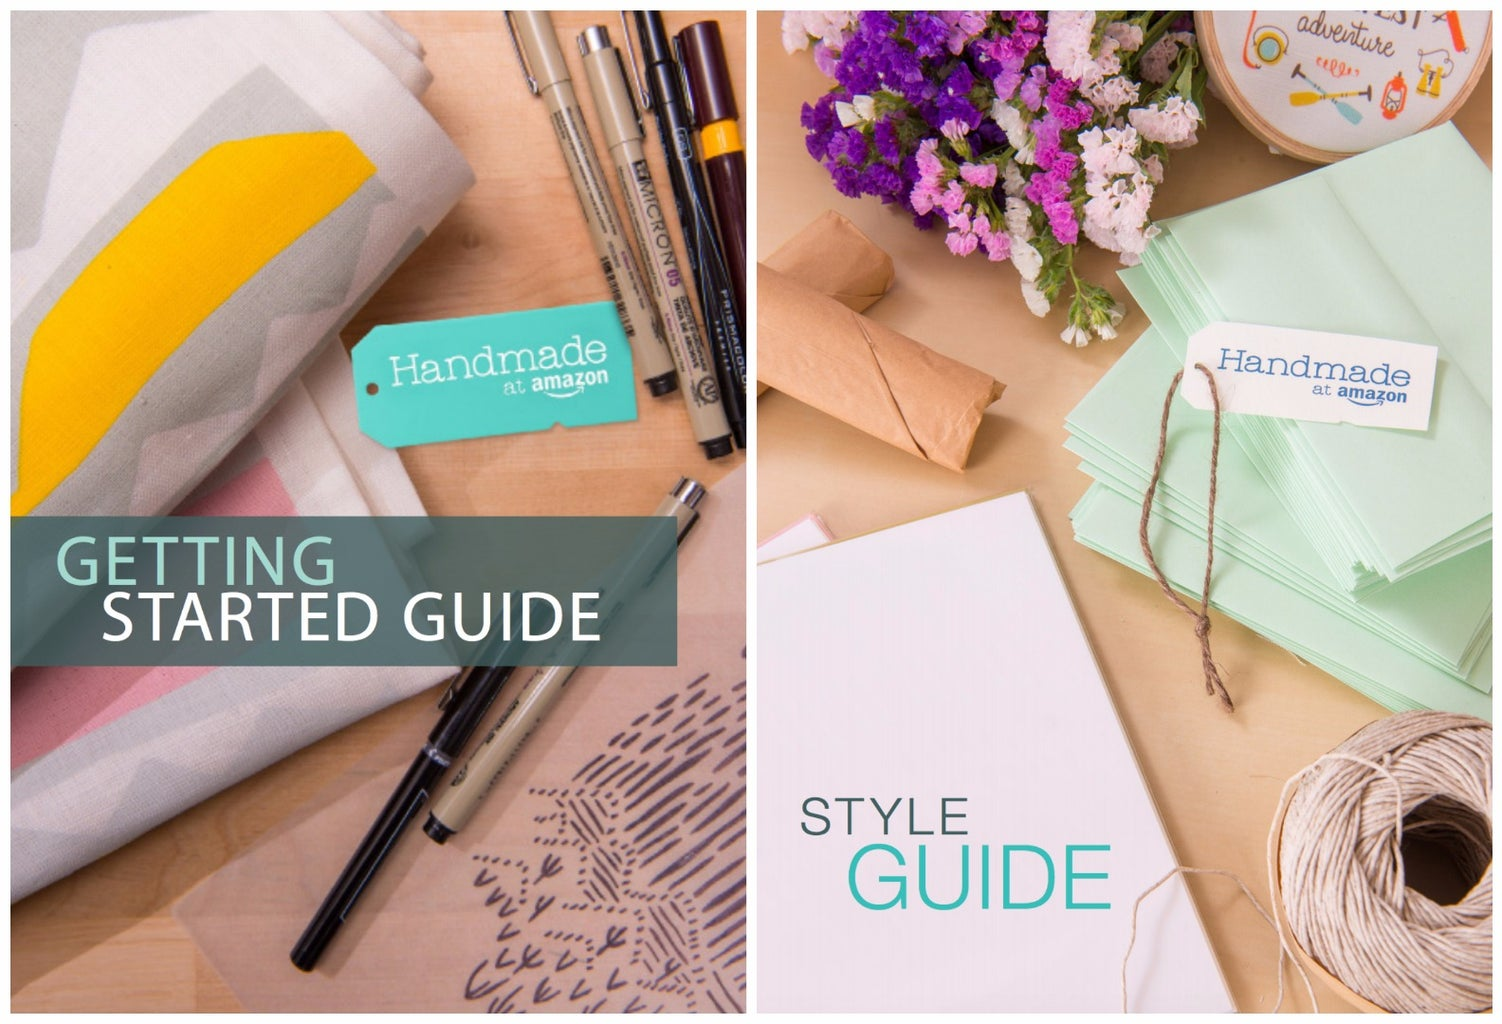 Review the Handmade at Amazon Style Guide and Getting Started Guide